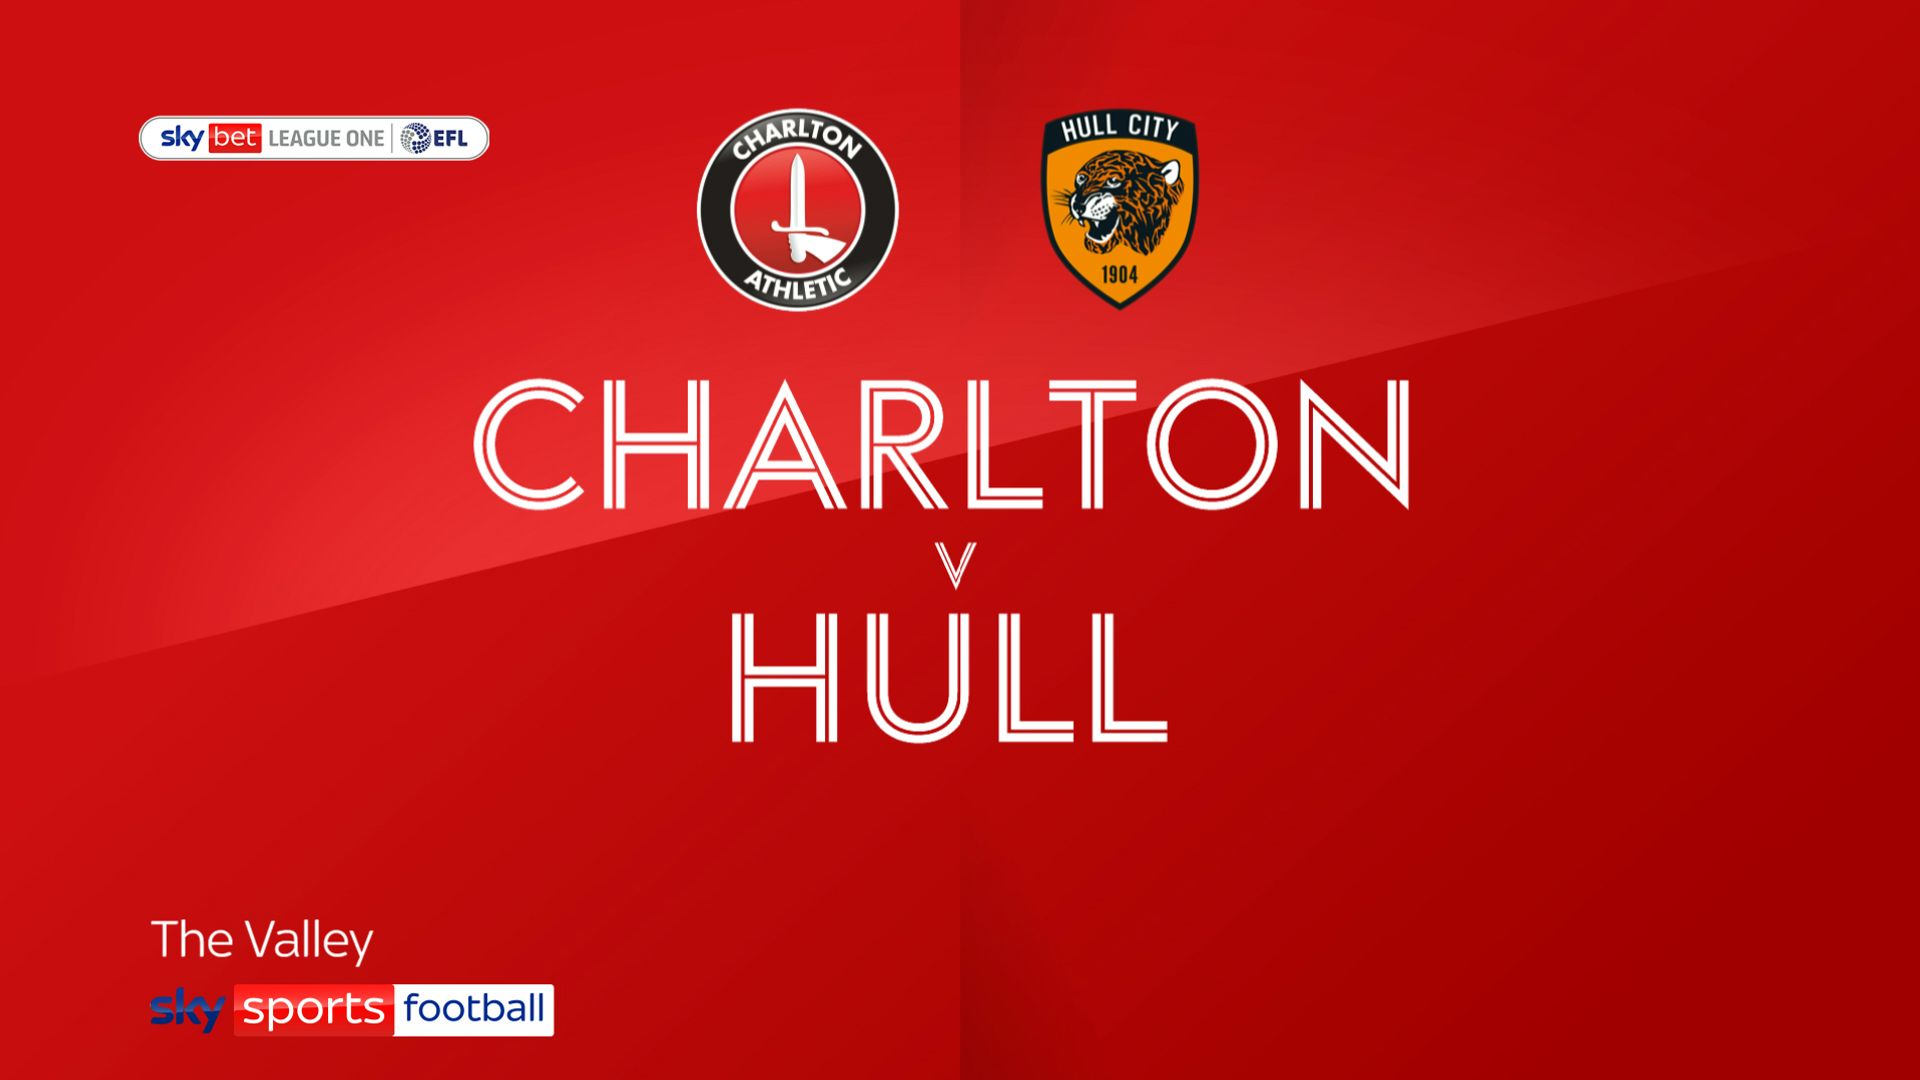 Charlton miss out on play-offs despite beating champions Hull